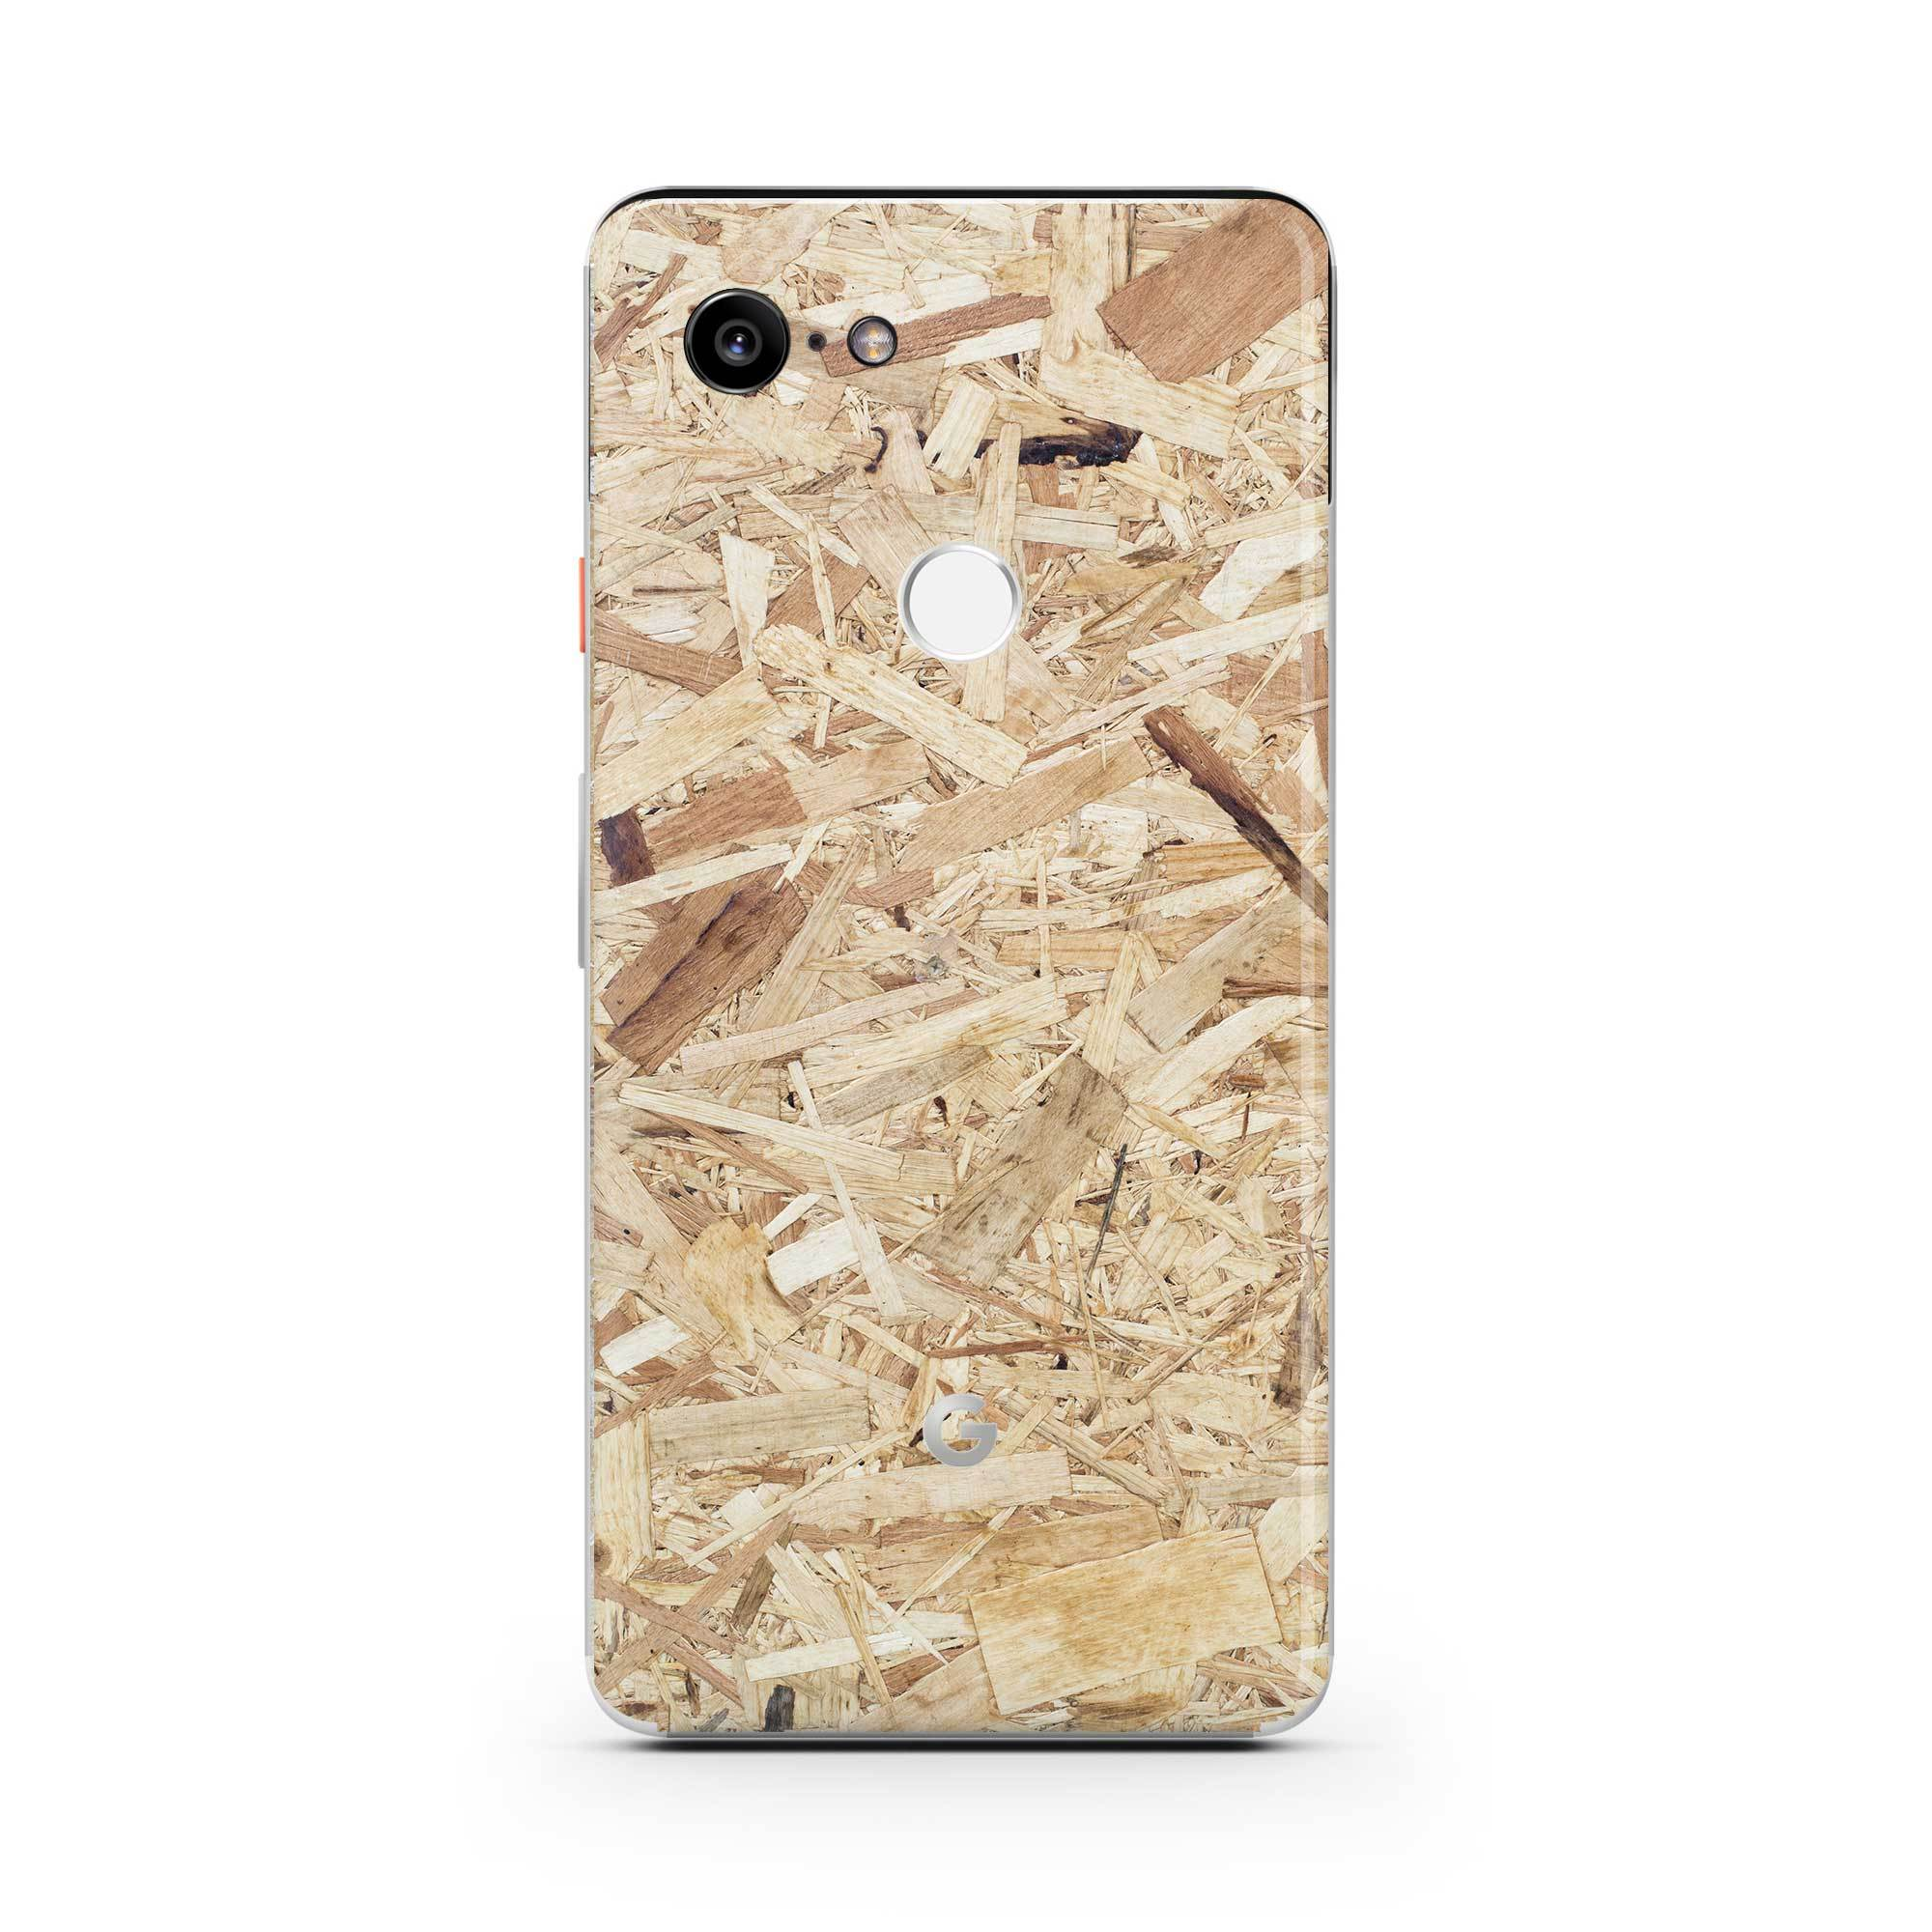 Plywood Pixel 3 Skin + Case